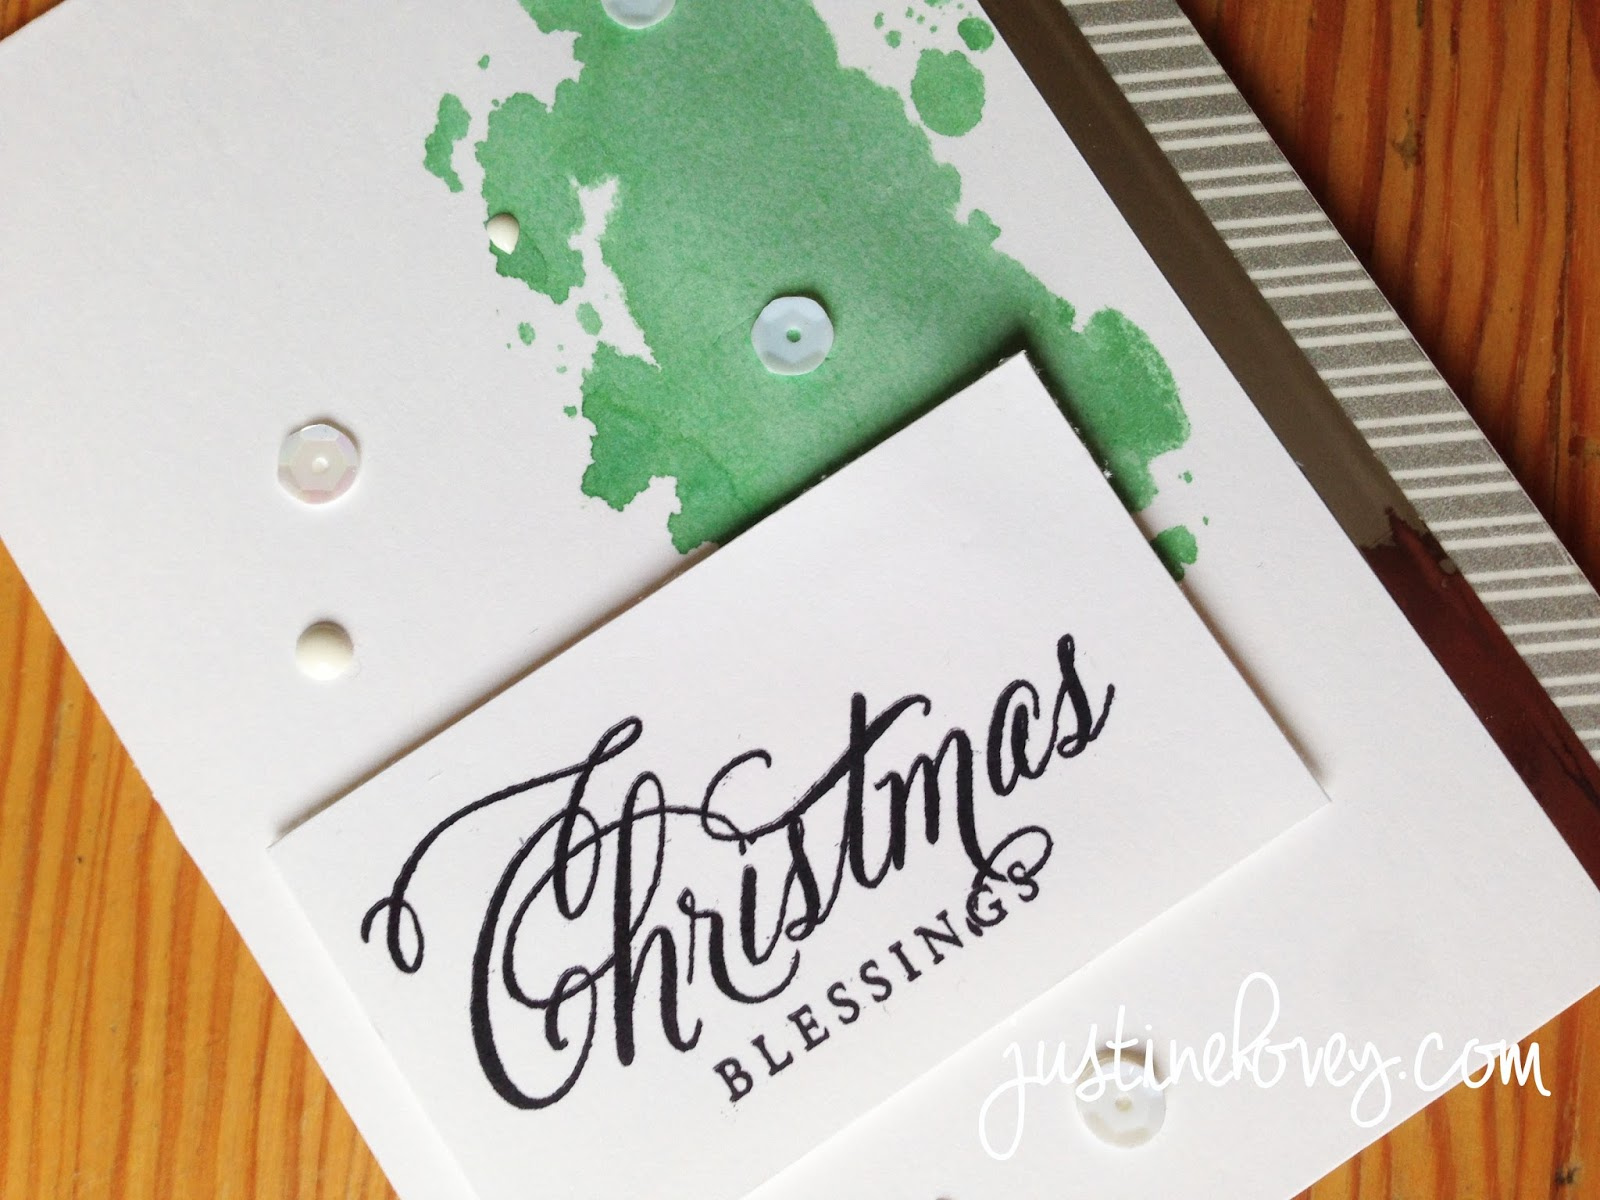 justine u0026 39 s cardmaking  12 days of christmas  day 9  wplus9